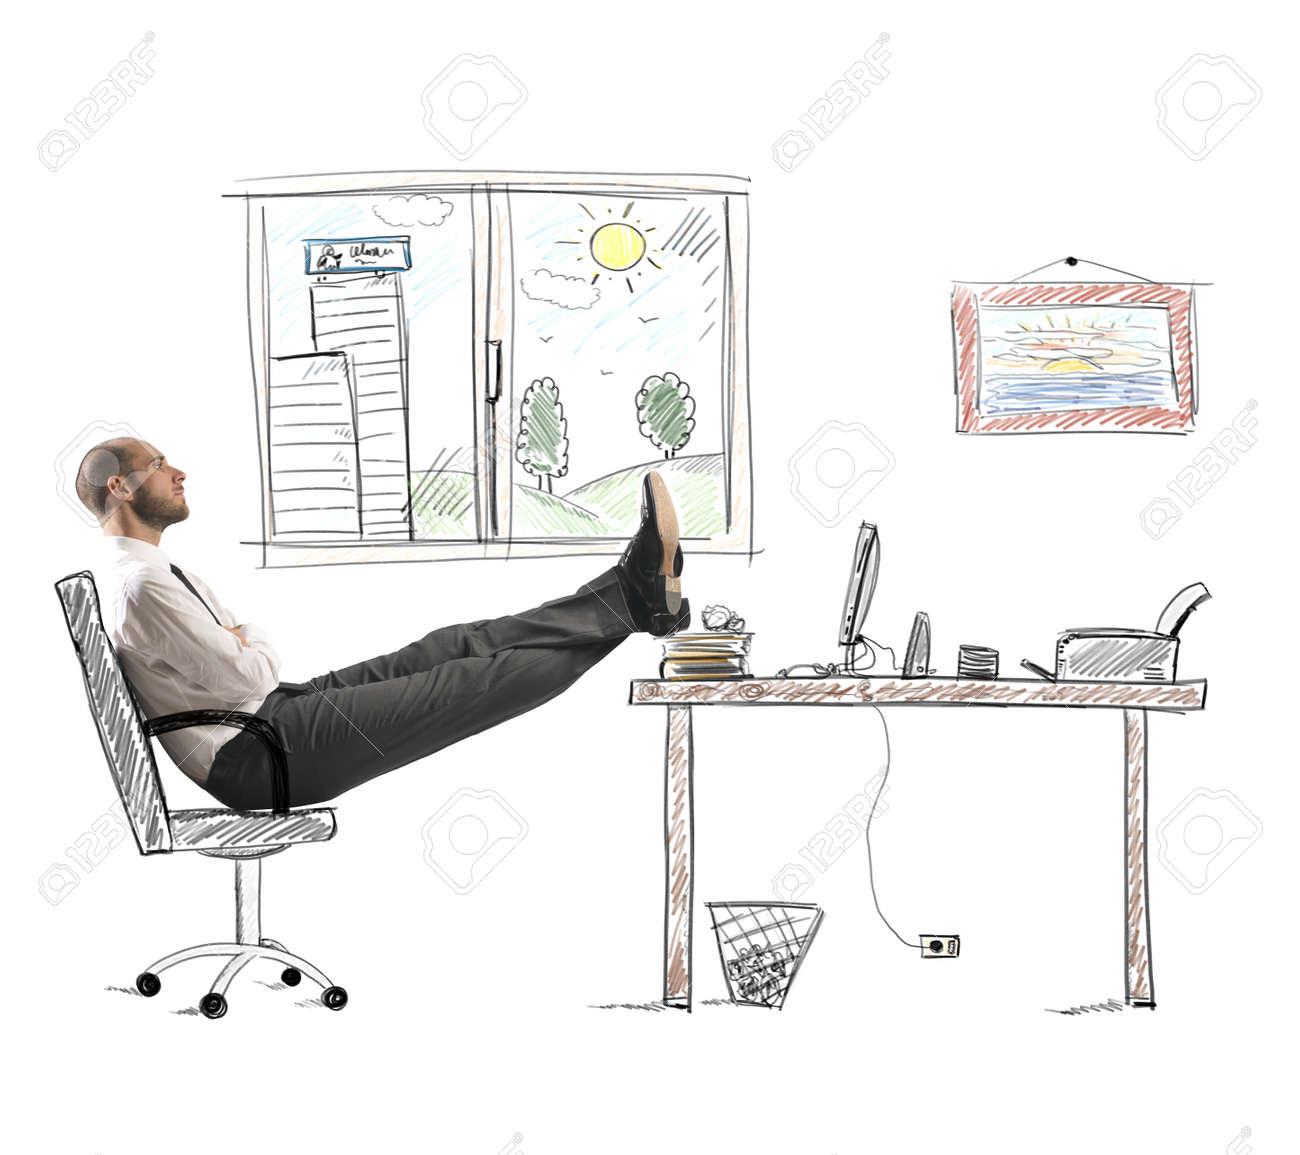 Concept of career and ambition of a businessman Stock Photo - 22638127